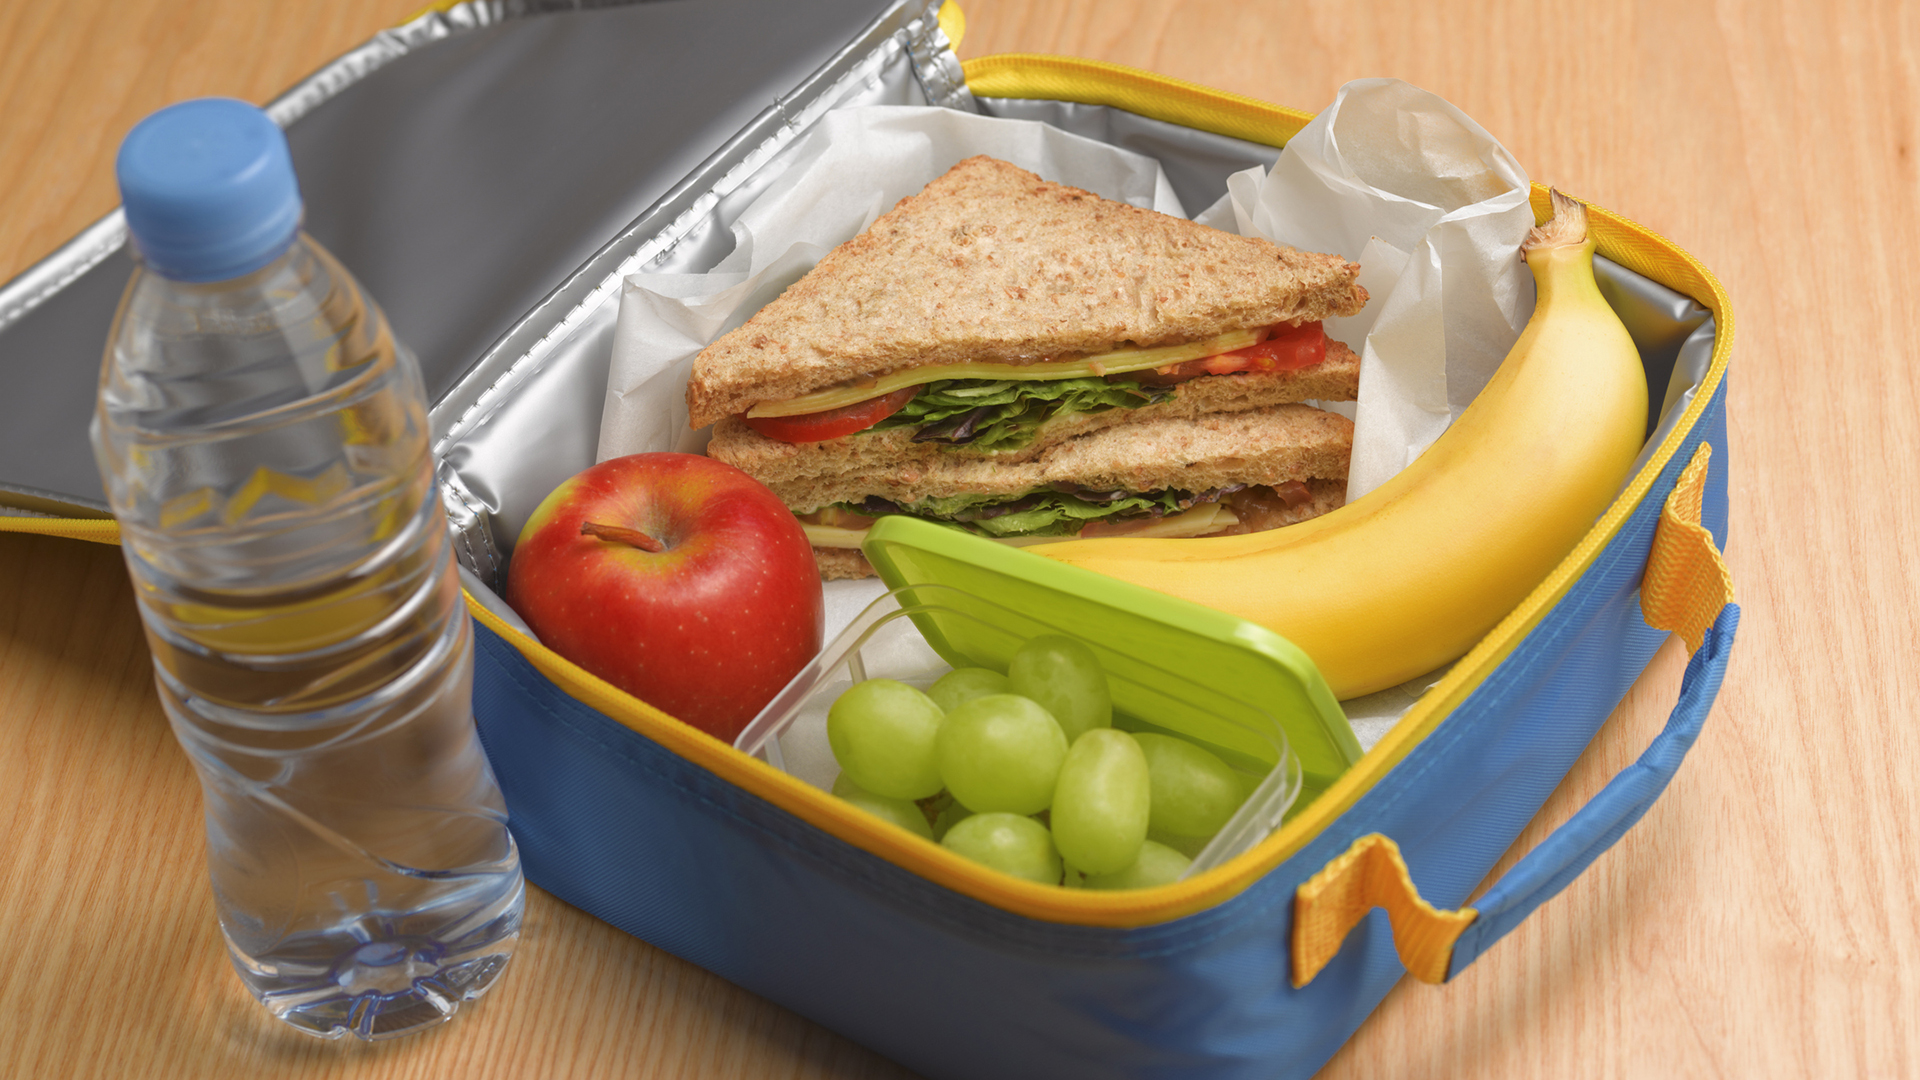 Lunch In A Box How To Clean Lunch Boxes Thermoses And Coffee Mugs